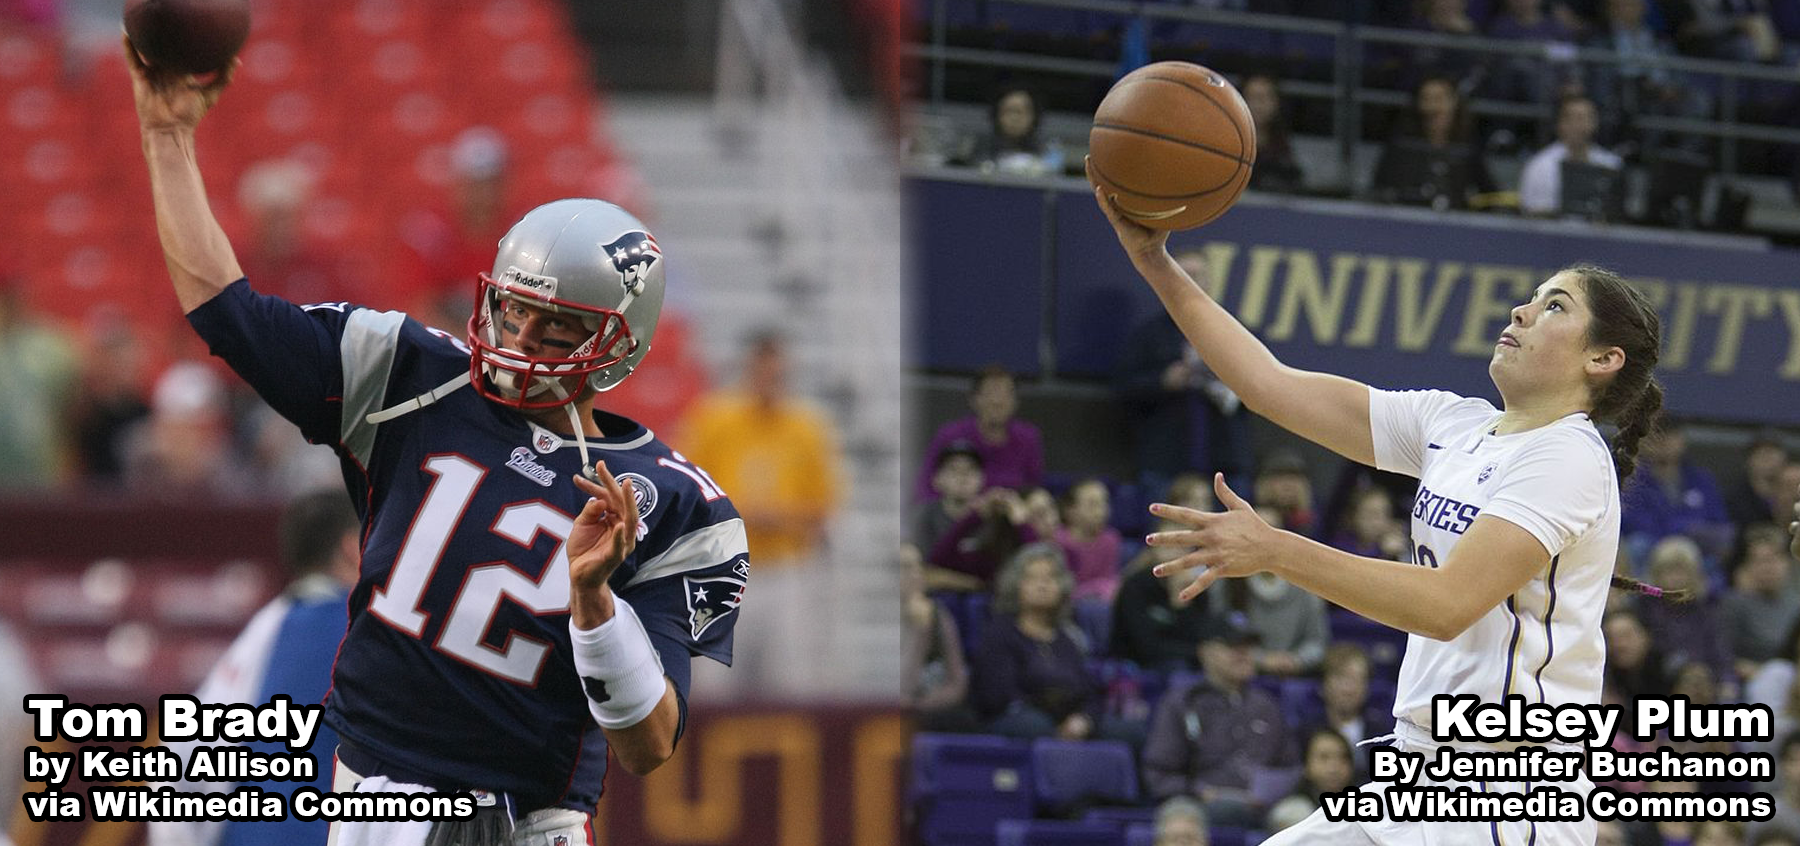 Tom Brady and Kelsey Plum